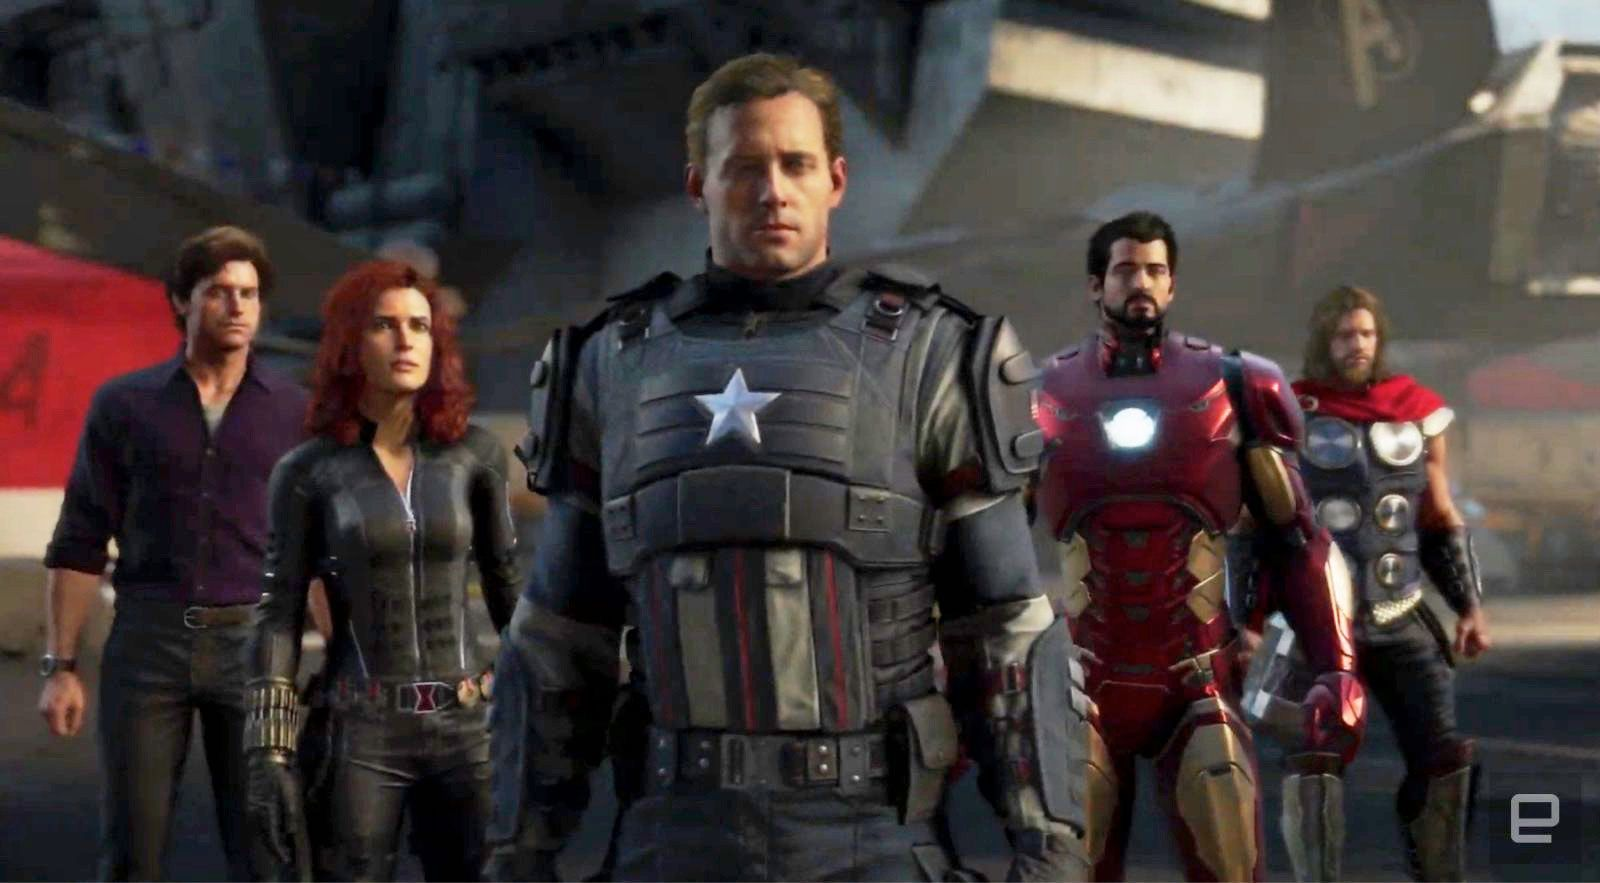 The Marvels Avengers game arrives May 15th 2020 Engadget 1600x883